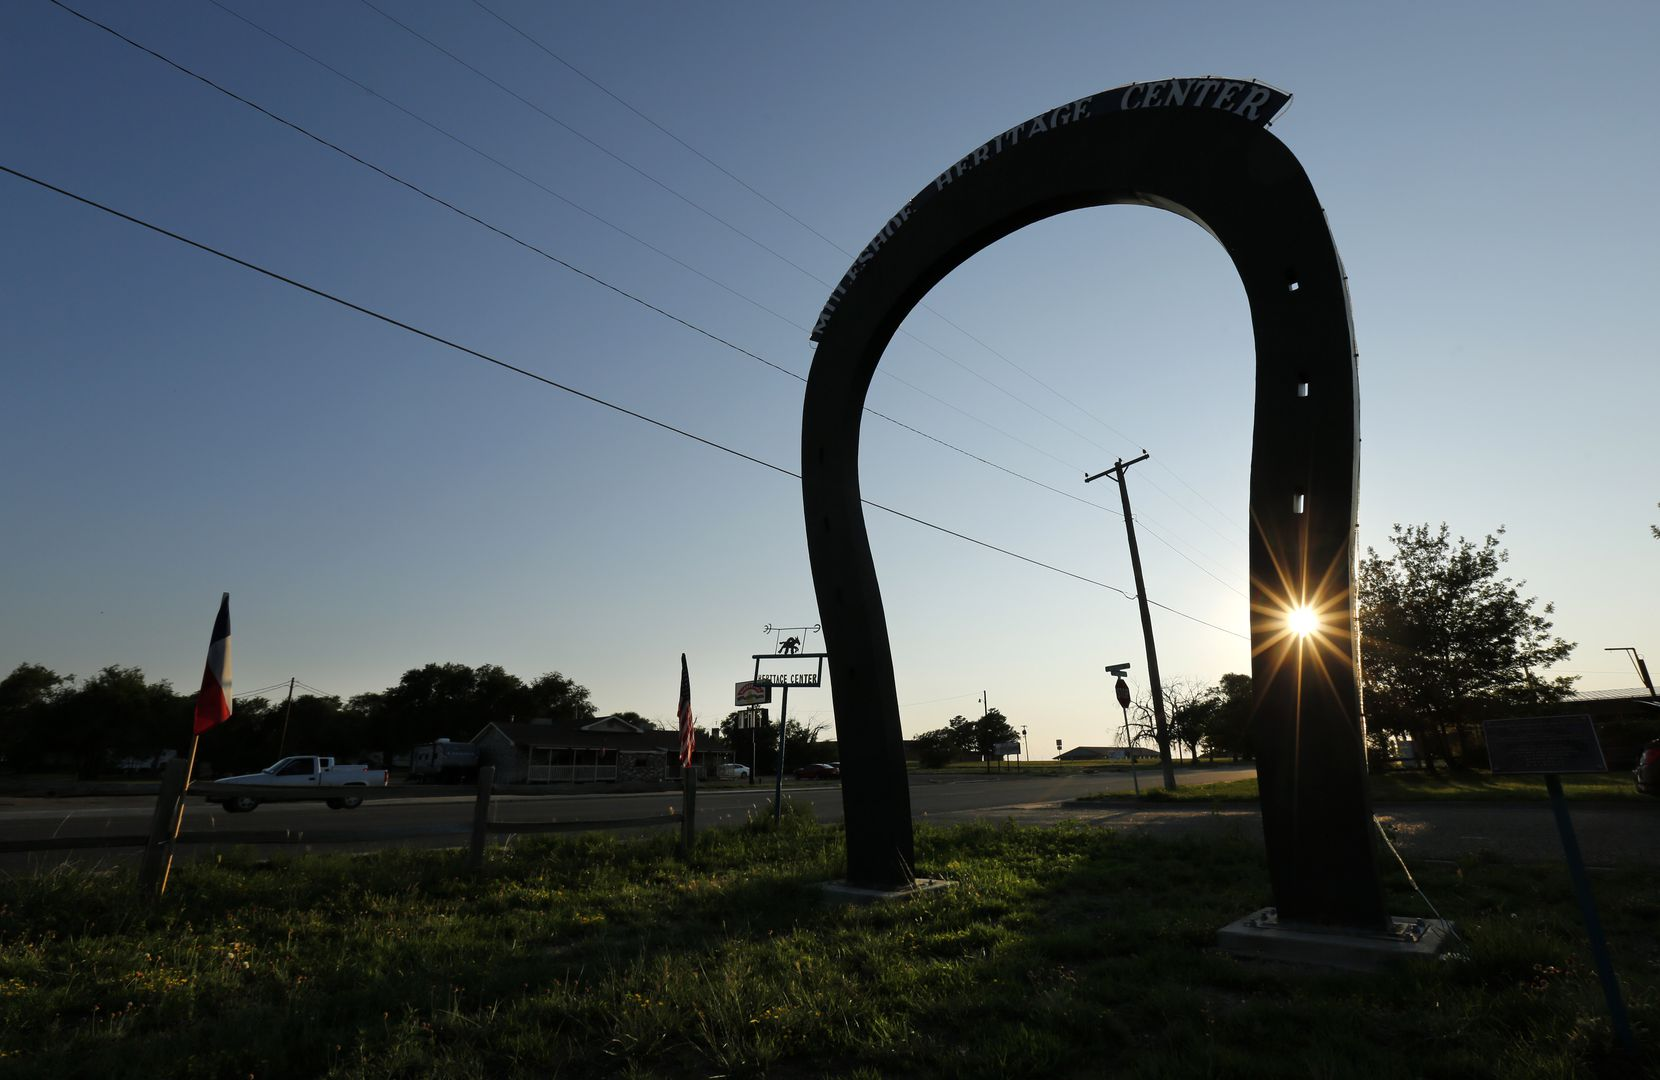 Muleshoe boasts of having the world's largest muleshoe, which was erected in 1994 along U.S. Hwy 84. It is also the hometown of Oklahoma Sooners head football coach Lincoln Riley.